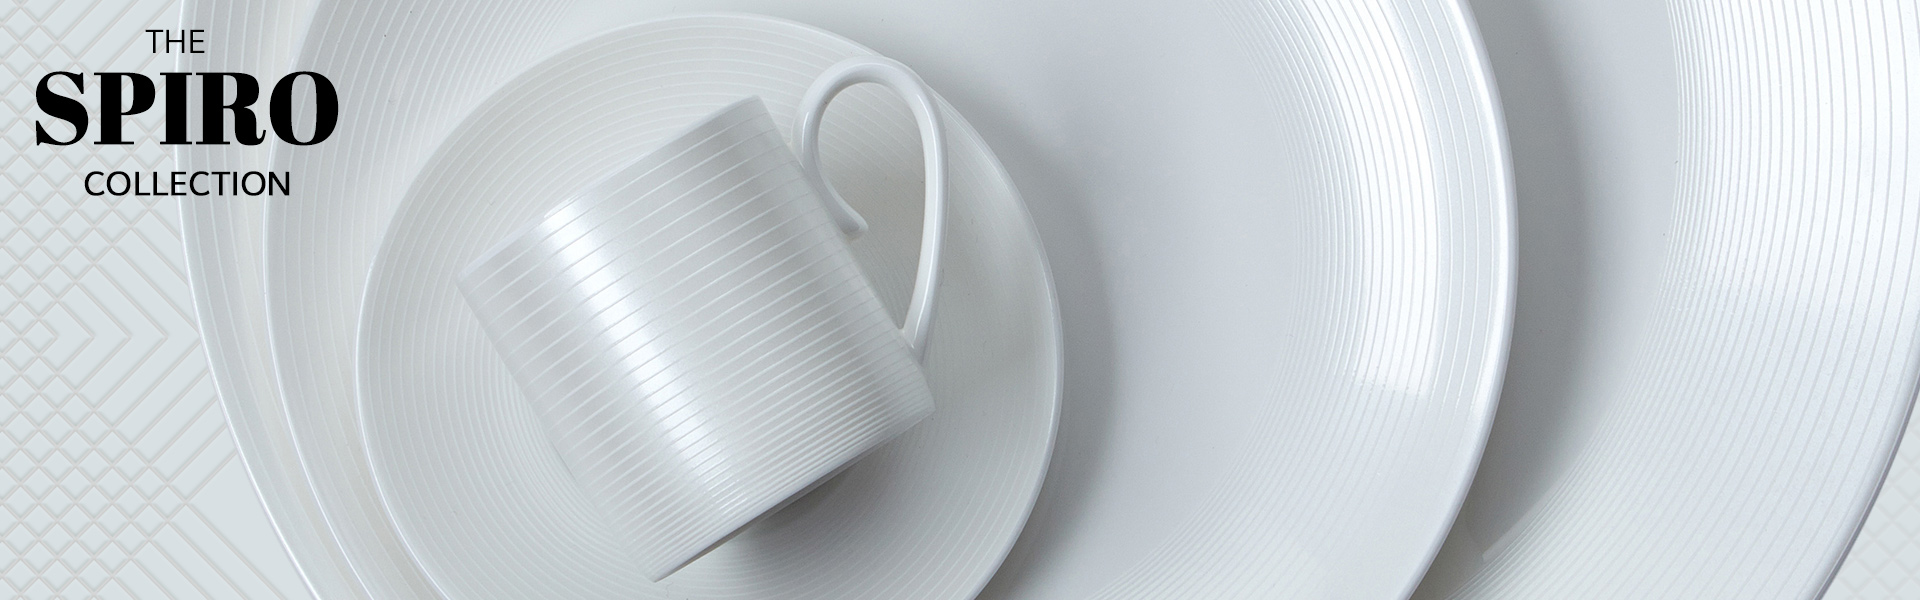 stack of bone china plates and a cup